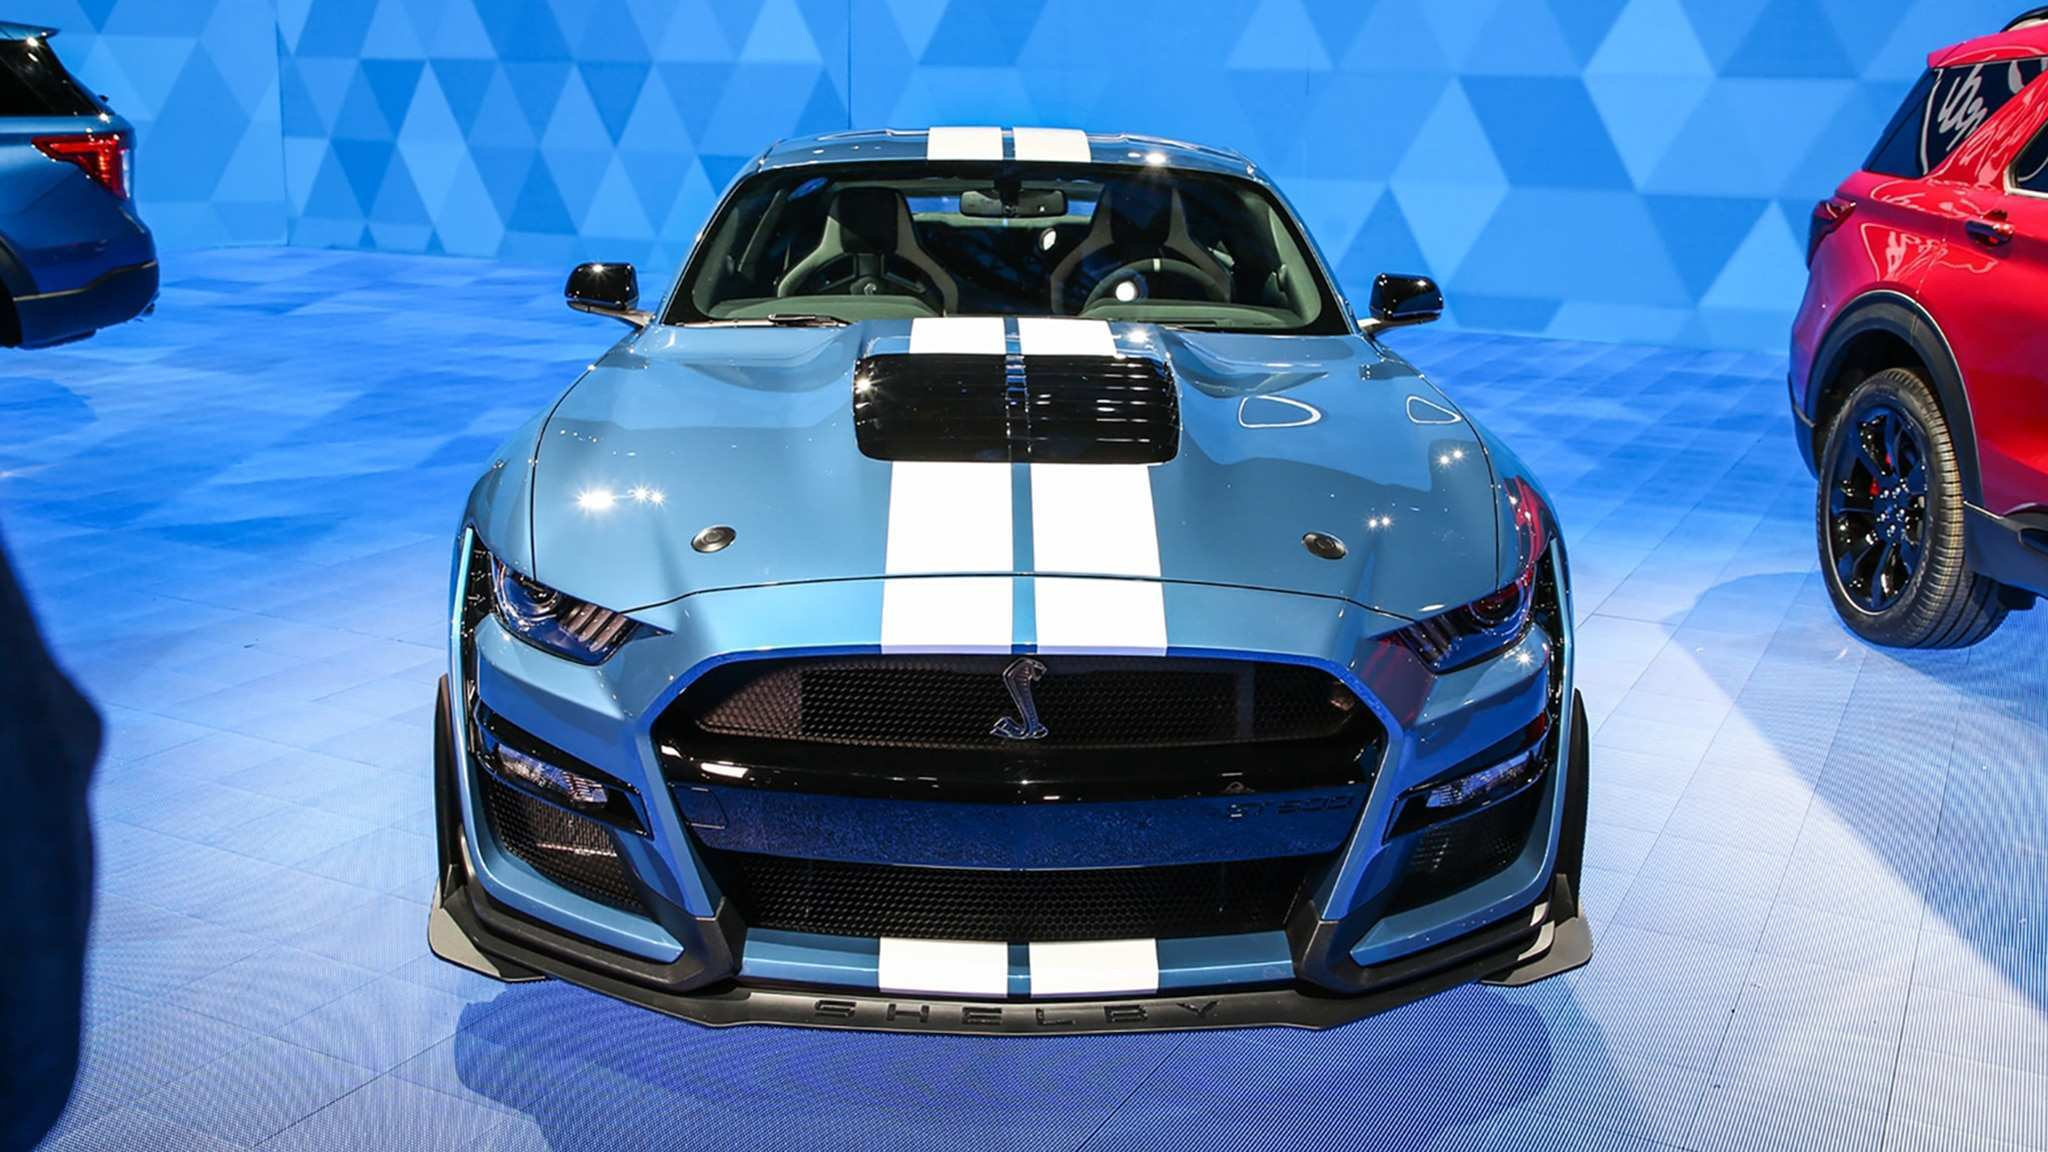 53 Gallery of 2020 Mustang Gt500 Pictures with 2020 Mustang Gt500